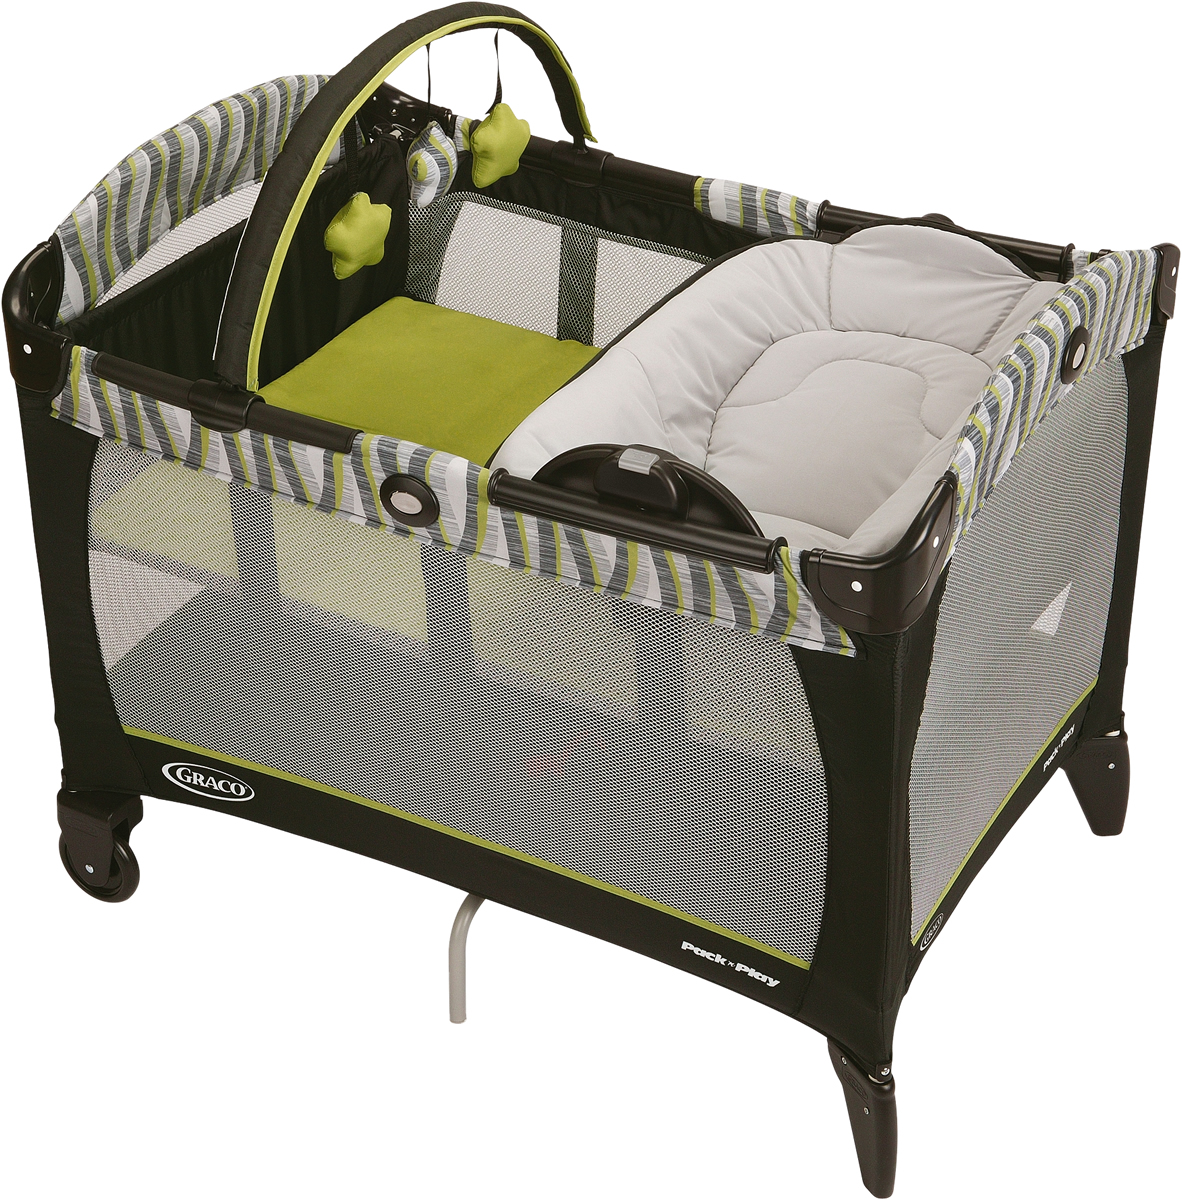 Portable Crib Playpen Pack N Play Graco Travel Playard Twin Bassinets Napper